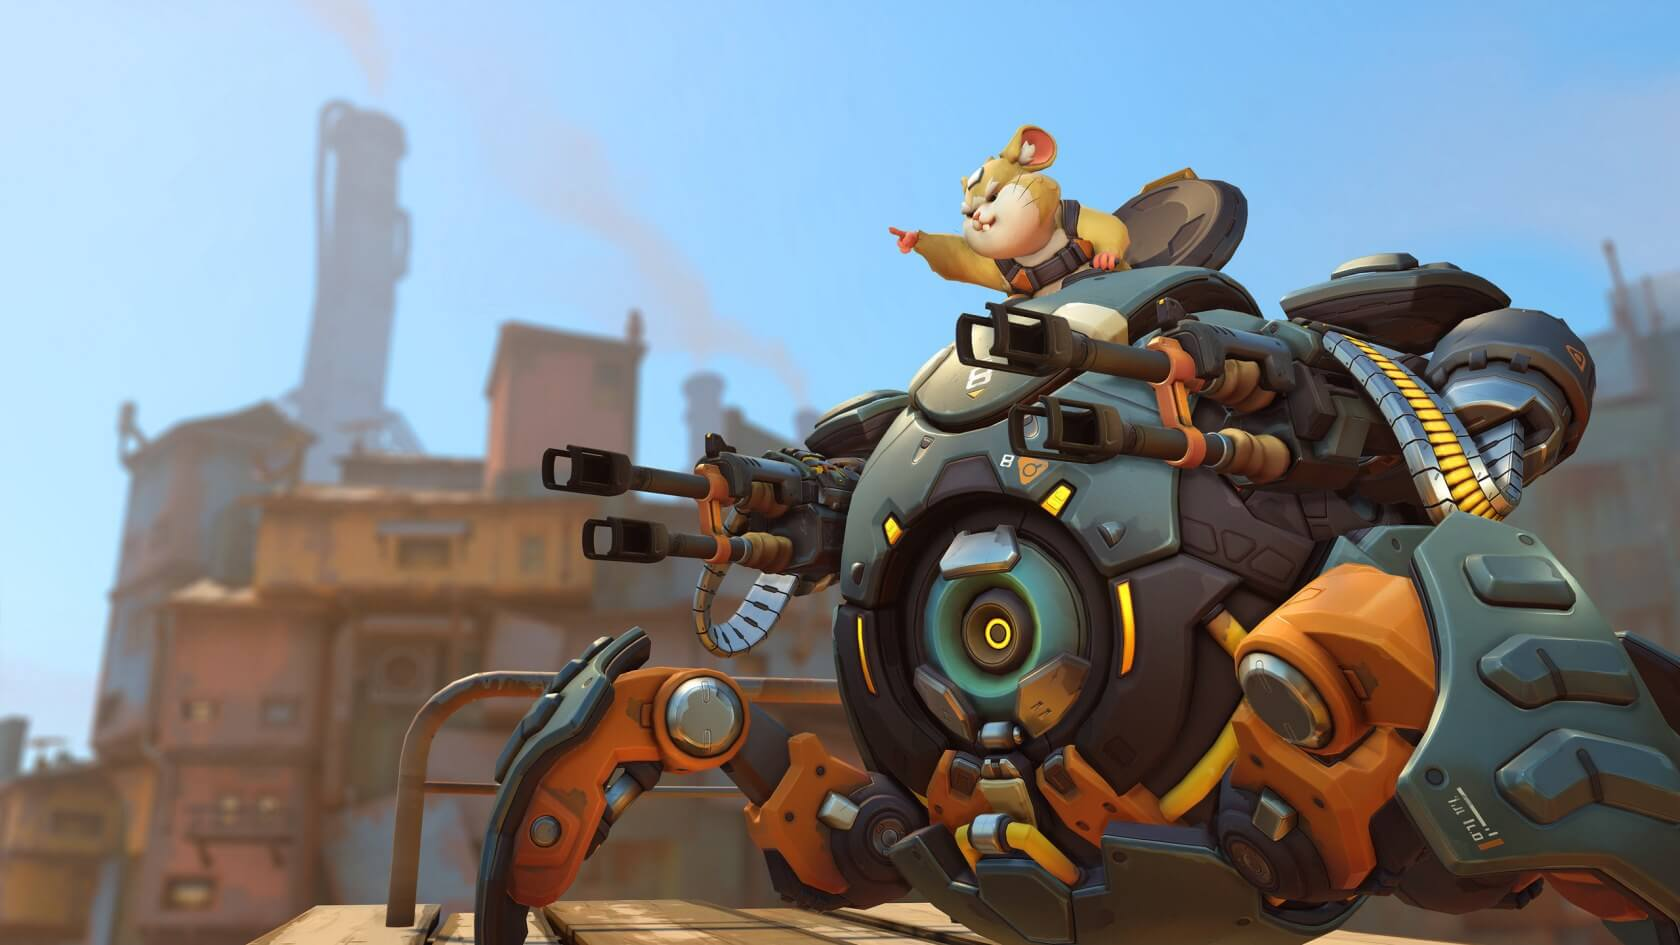 Overwatch's 'Collegiate Clash' tournament will reward winning teams with $40,000 in scholarship funds